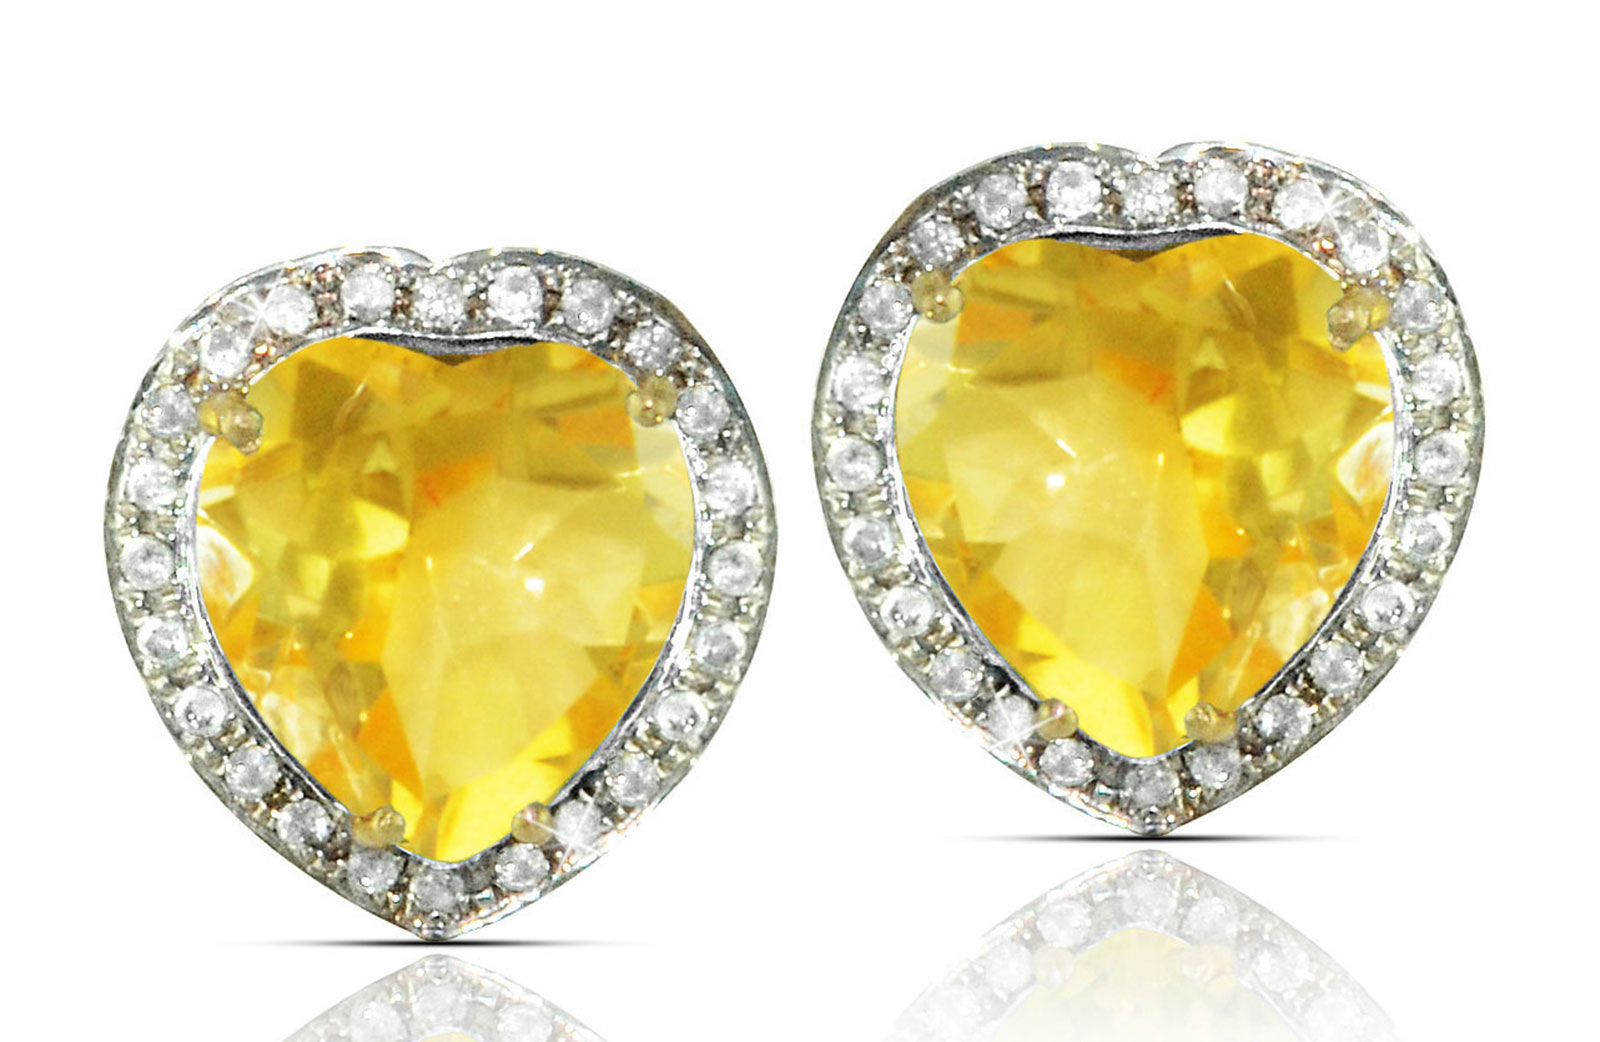 Vera Perla 18k  Gold 10mm Genuine Heart  Cut Citrine 0.28Ct Genuine Diamonds earrings